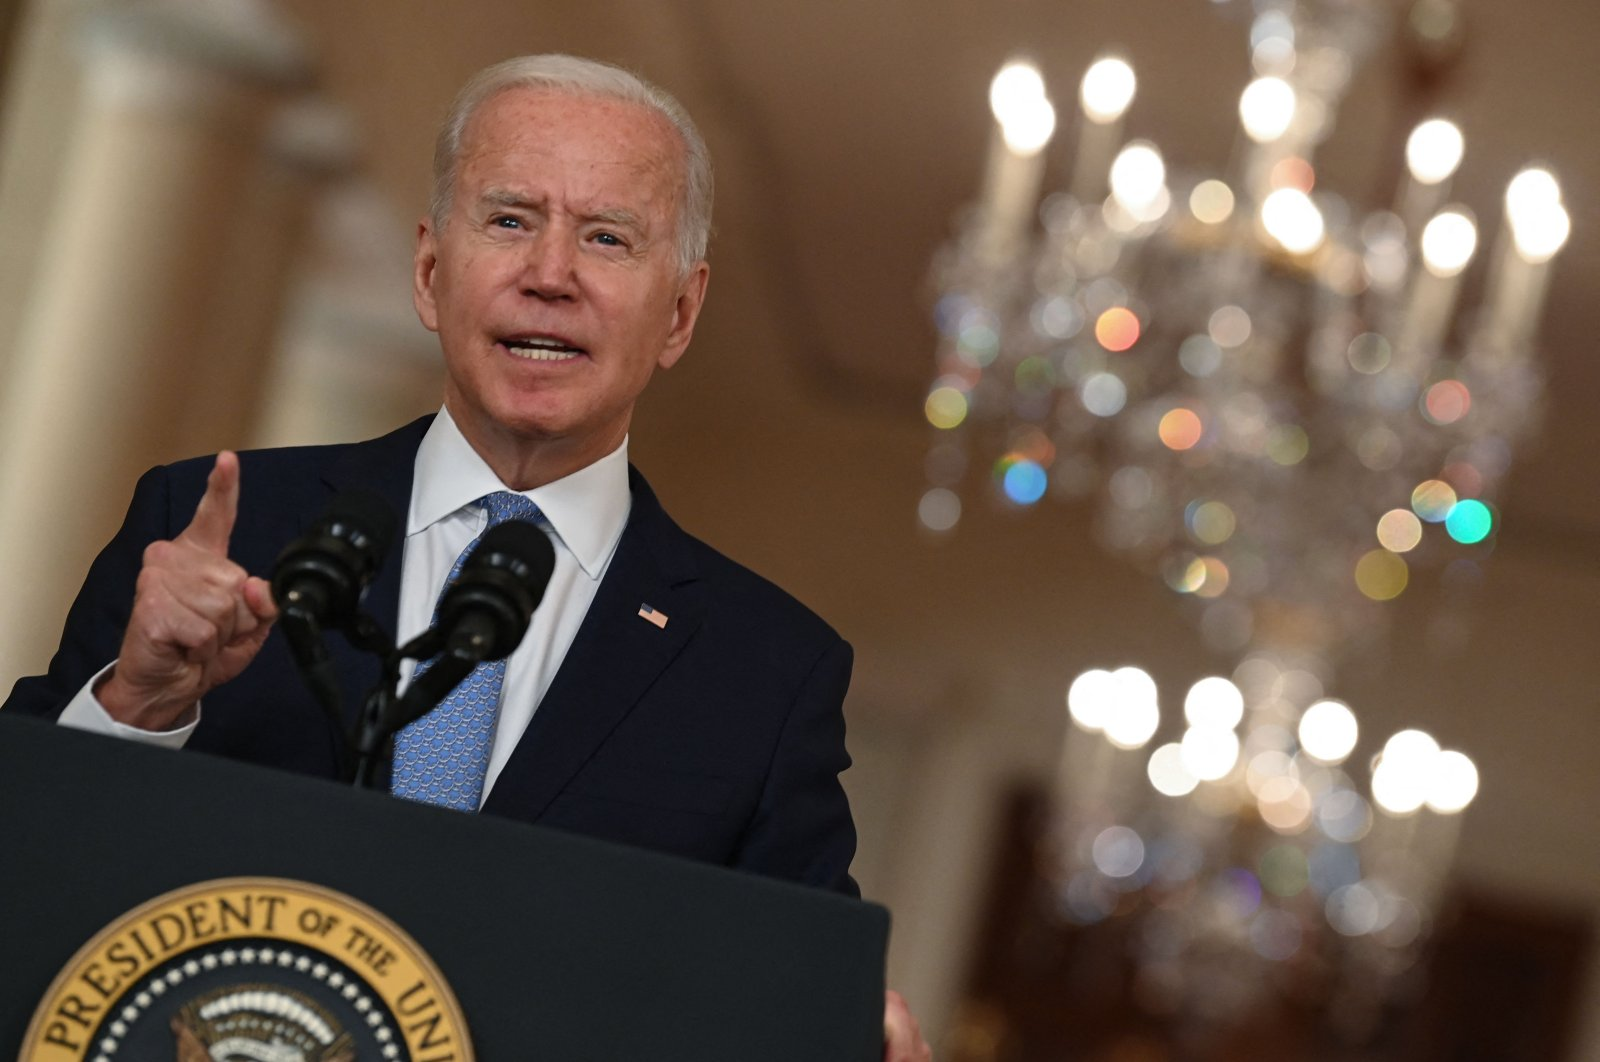 US President Joe Biden speaks on ending the war in Afghanistan in the State Dining Room at the White House in Washington, DC, on August 31, 2021. (AFP Photo)